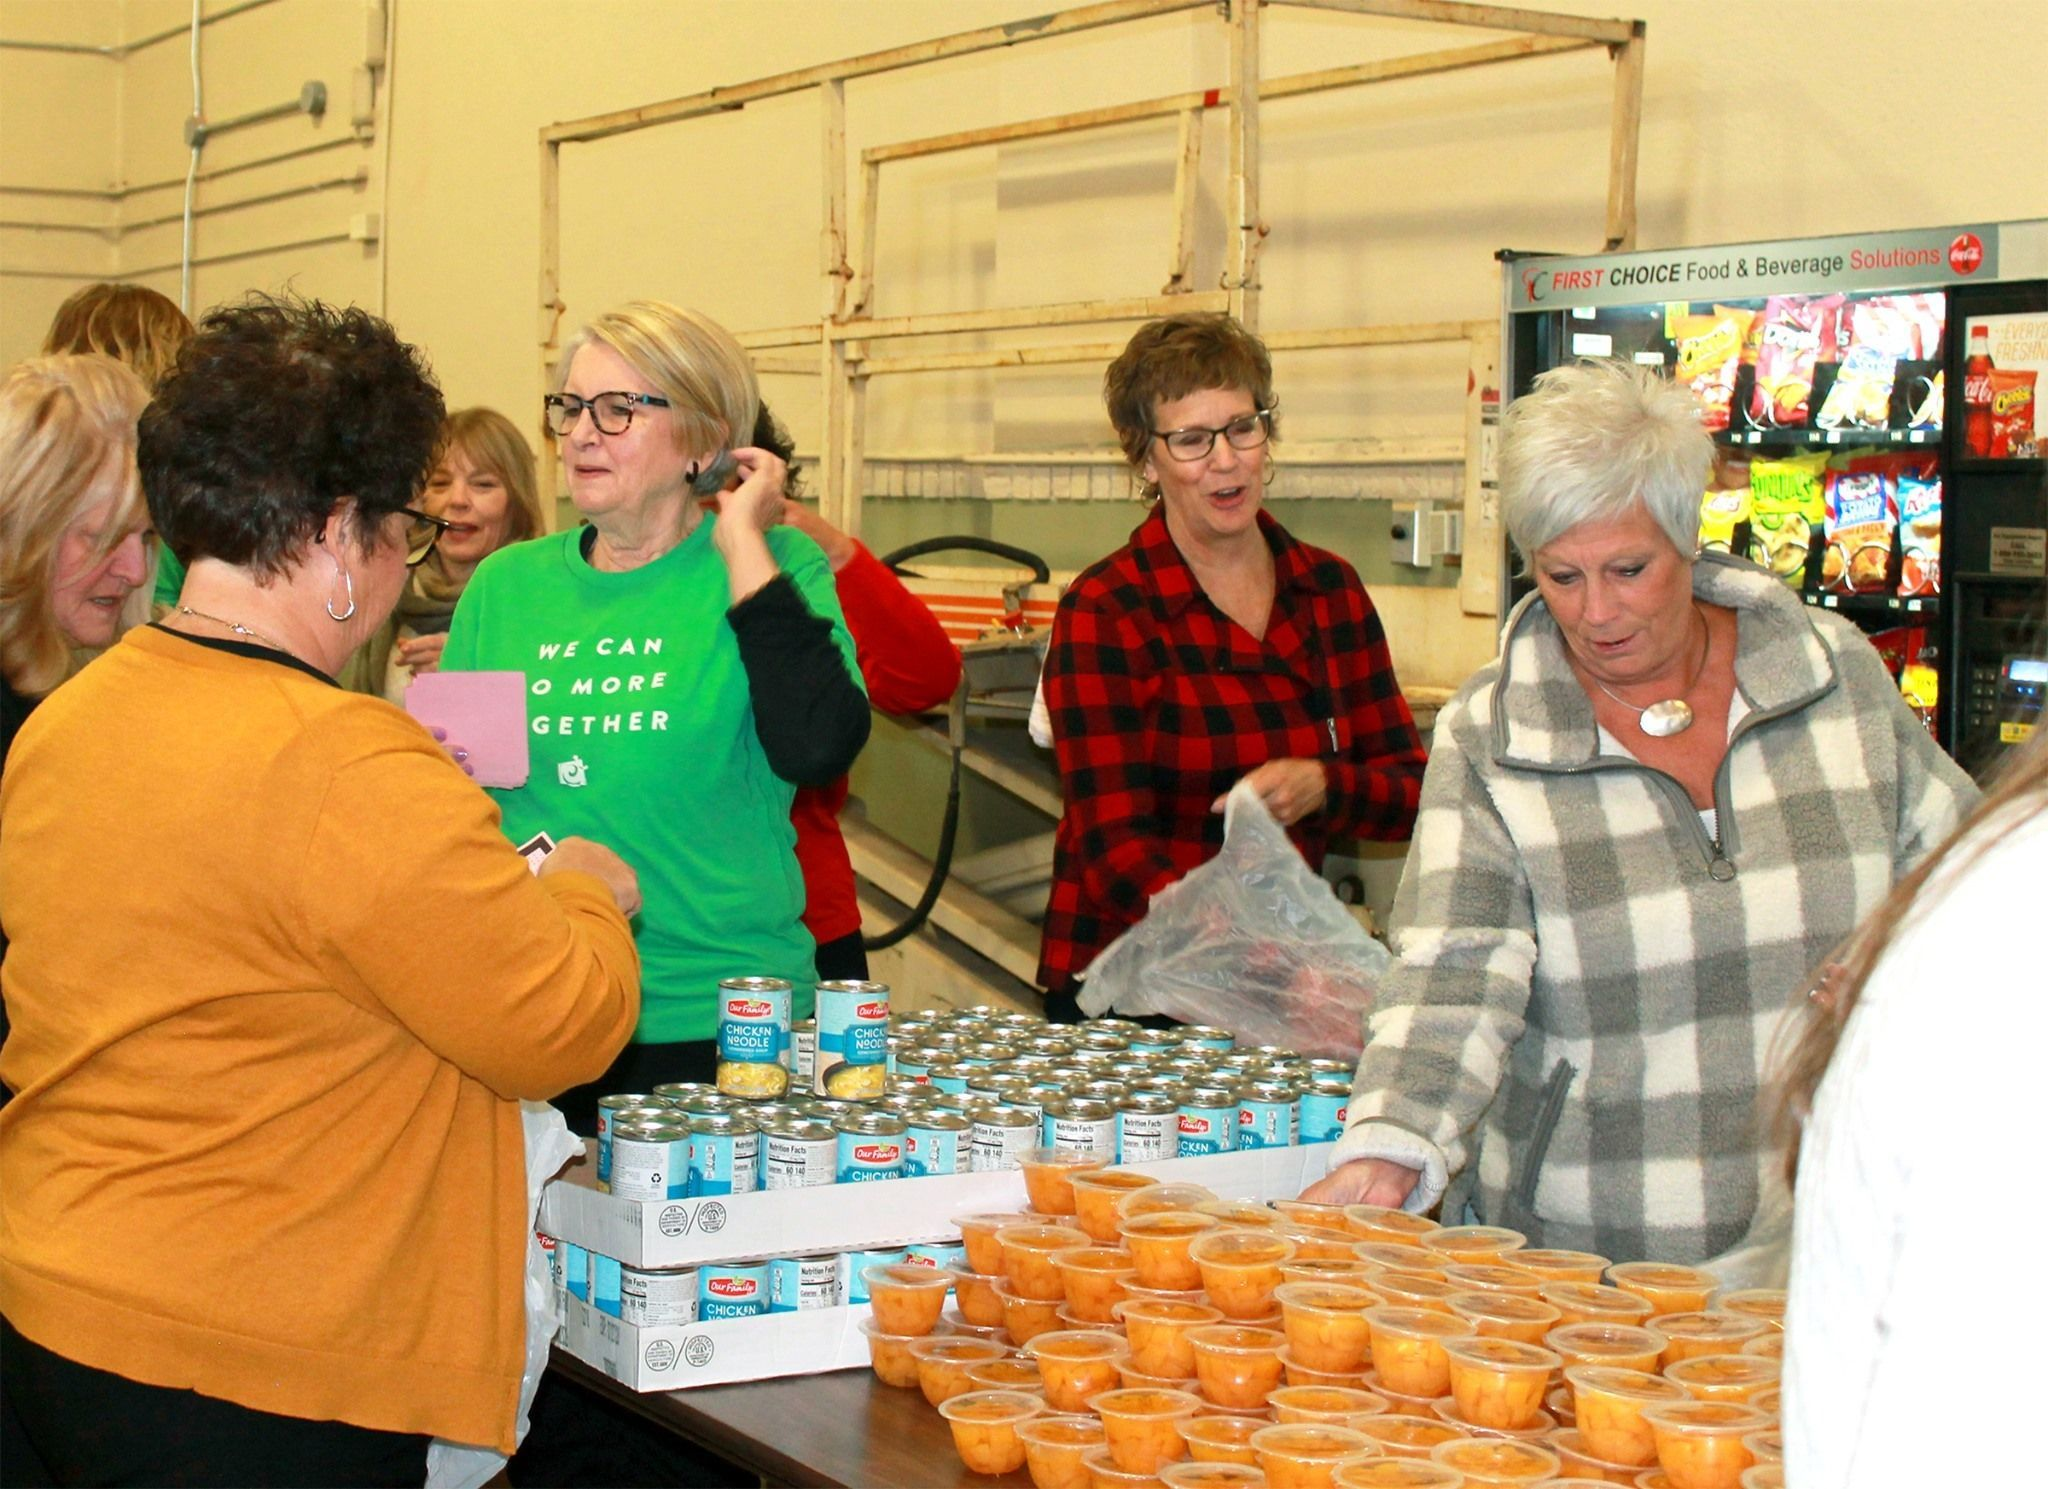 In the Know Column: Create a chain reaction through United Acts of Kindness